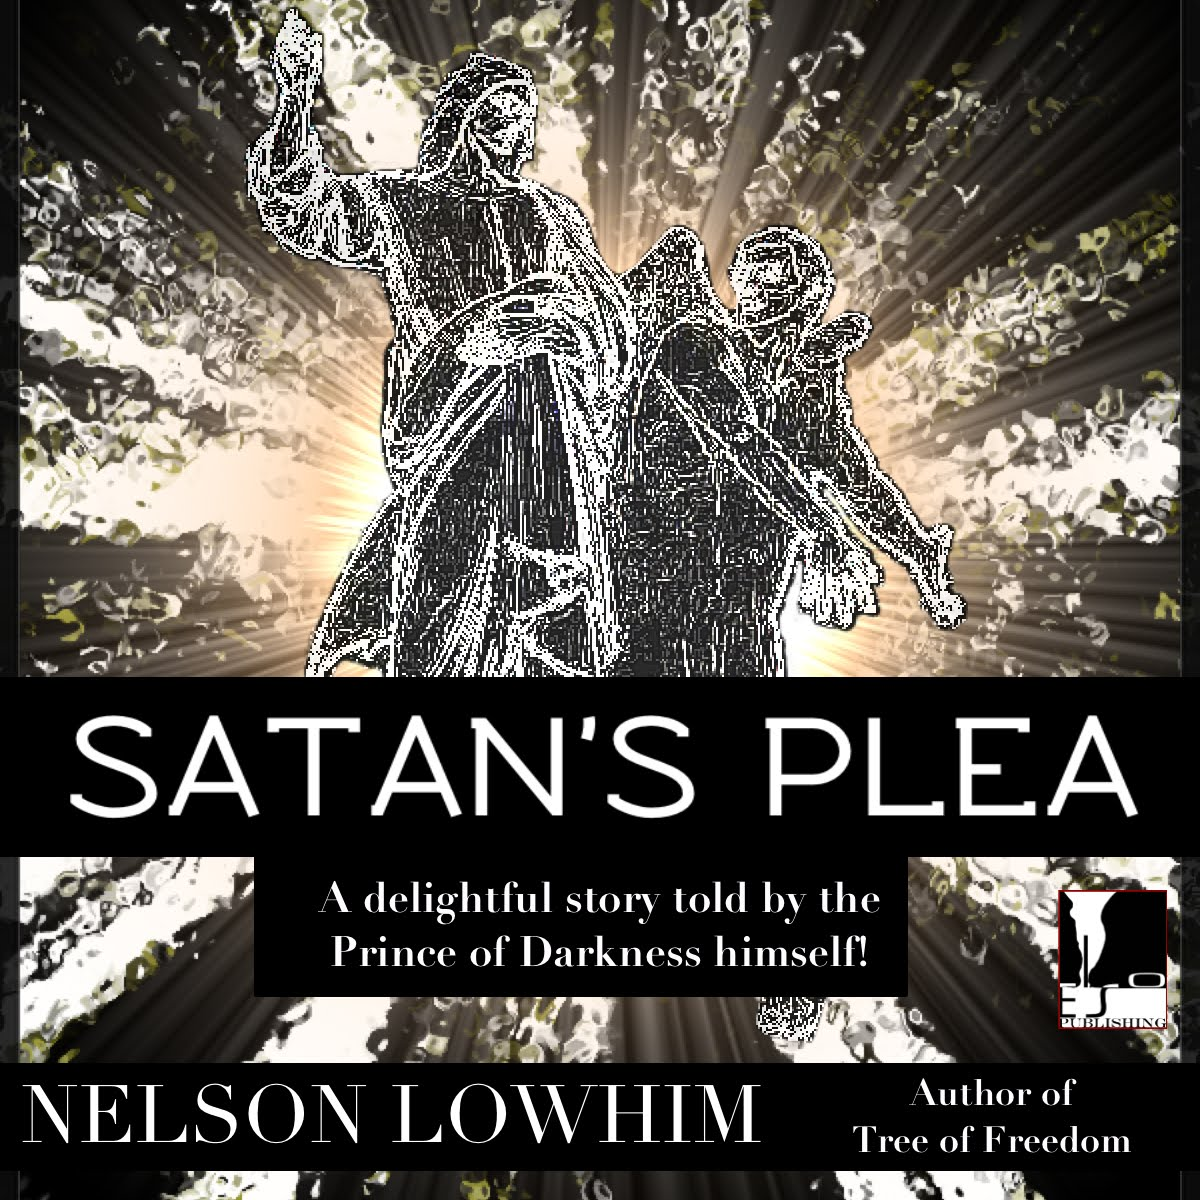 Satan's Plea, a 1 hour AudioBook